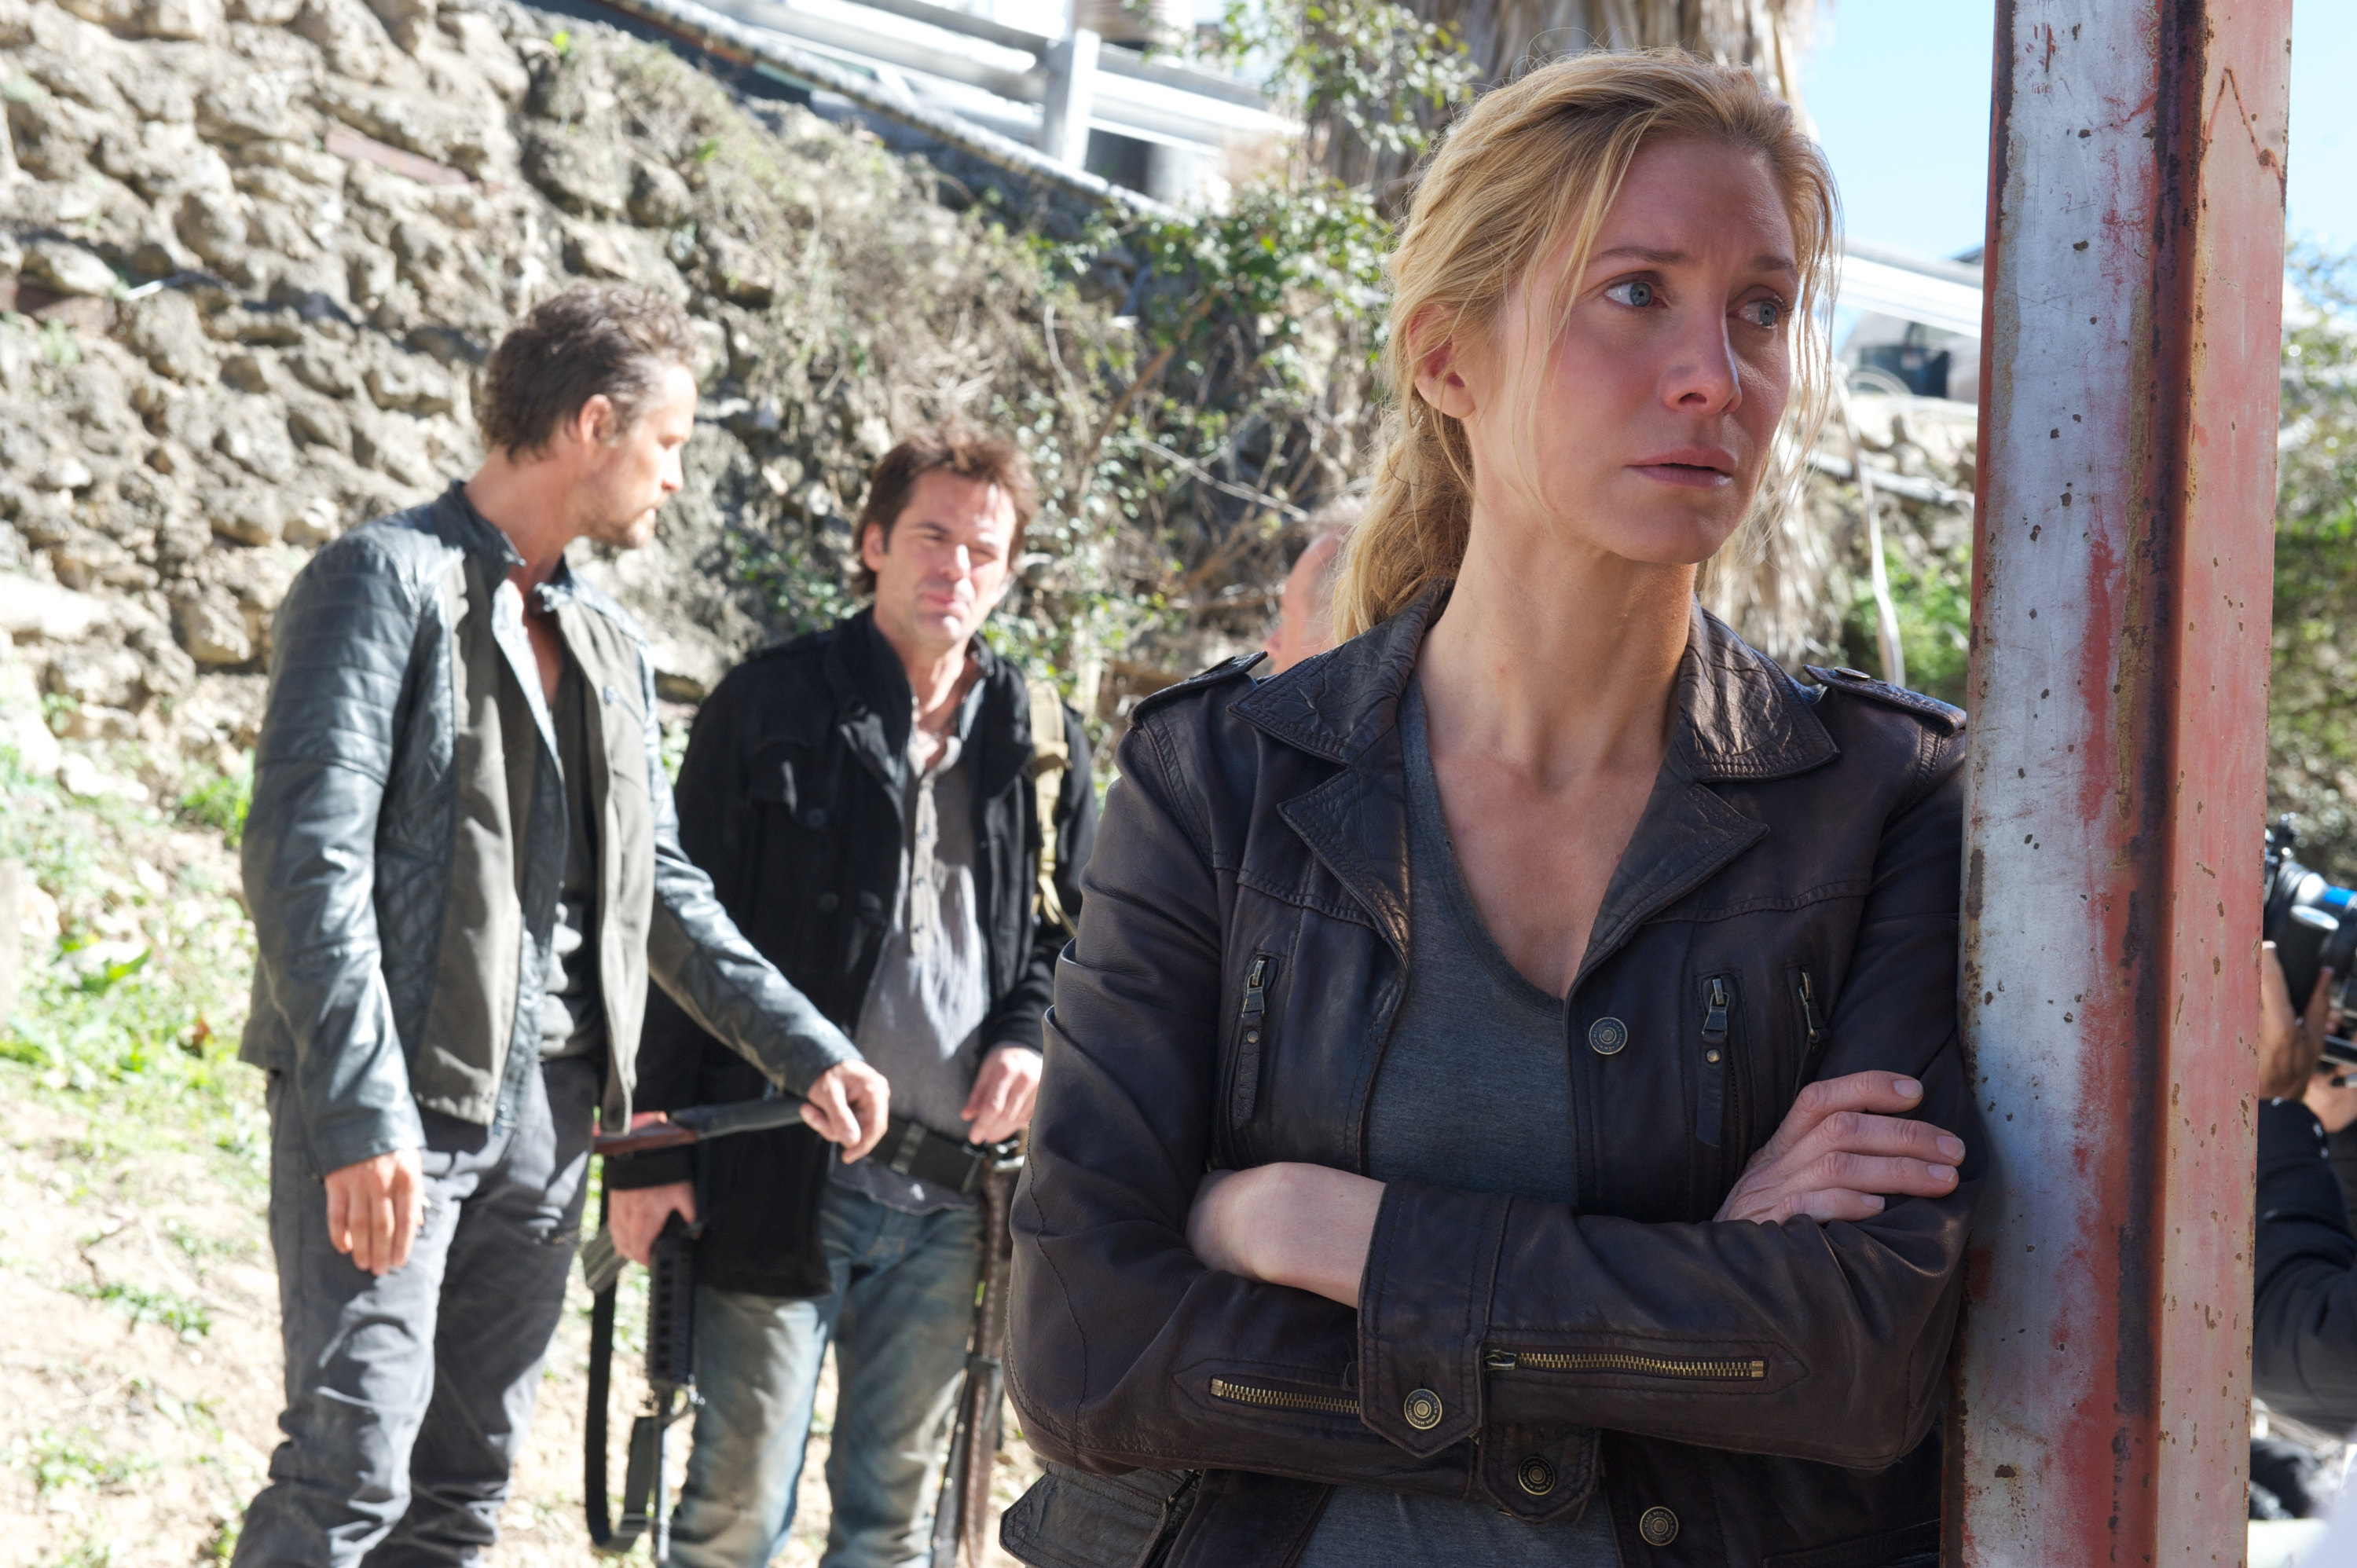 Revolution - Rachelleans on a post with Sebastian Monroe and Miles Matheson in background